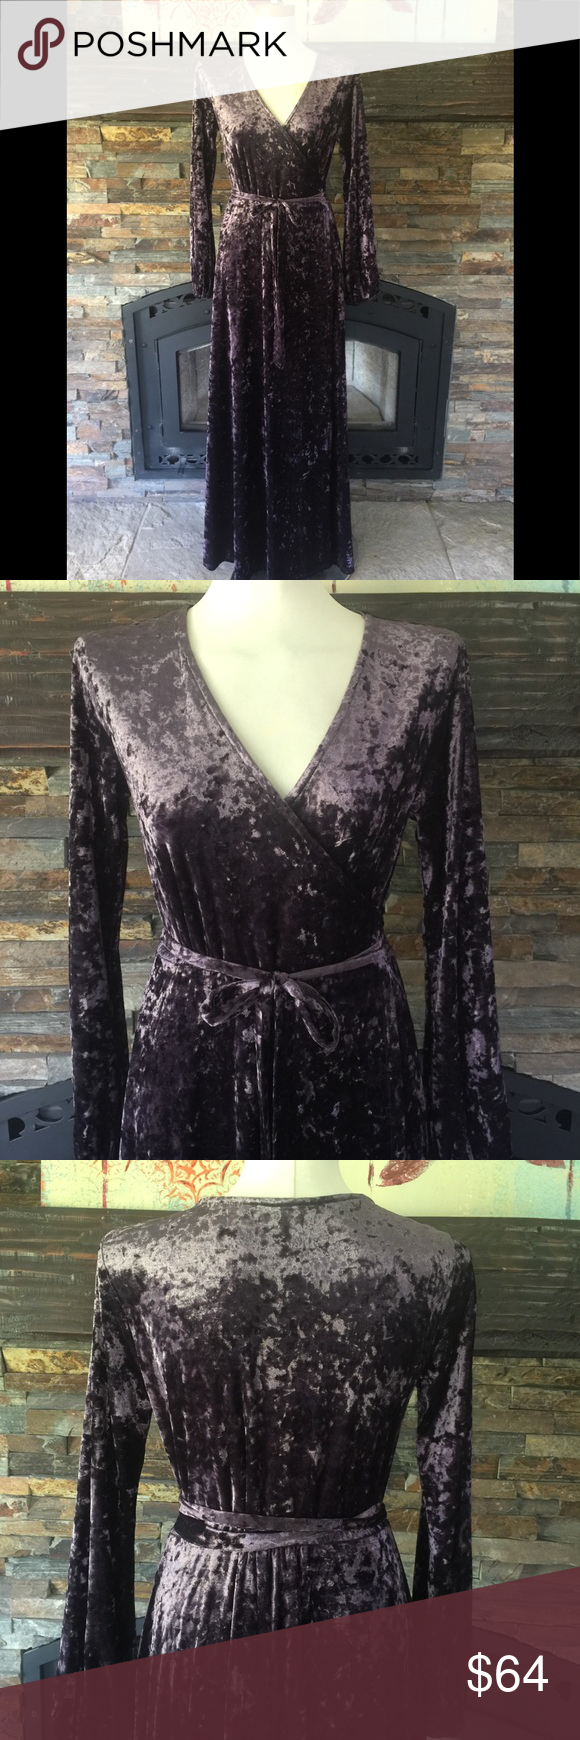 1bb1e9c7adf Gianni Bini Rotar Maxi Dress crushed velvet Gorgeous maxi dress from Gianni  Bini! Women s small True wrap style Color is a bronzey-plum shade New with  tags ...